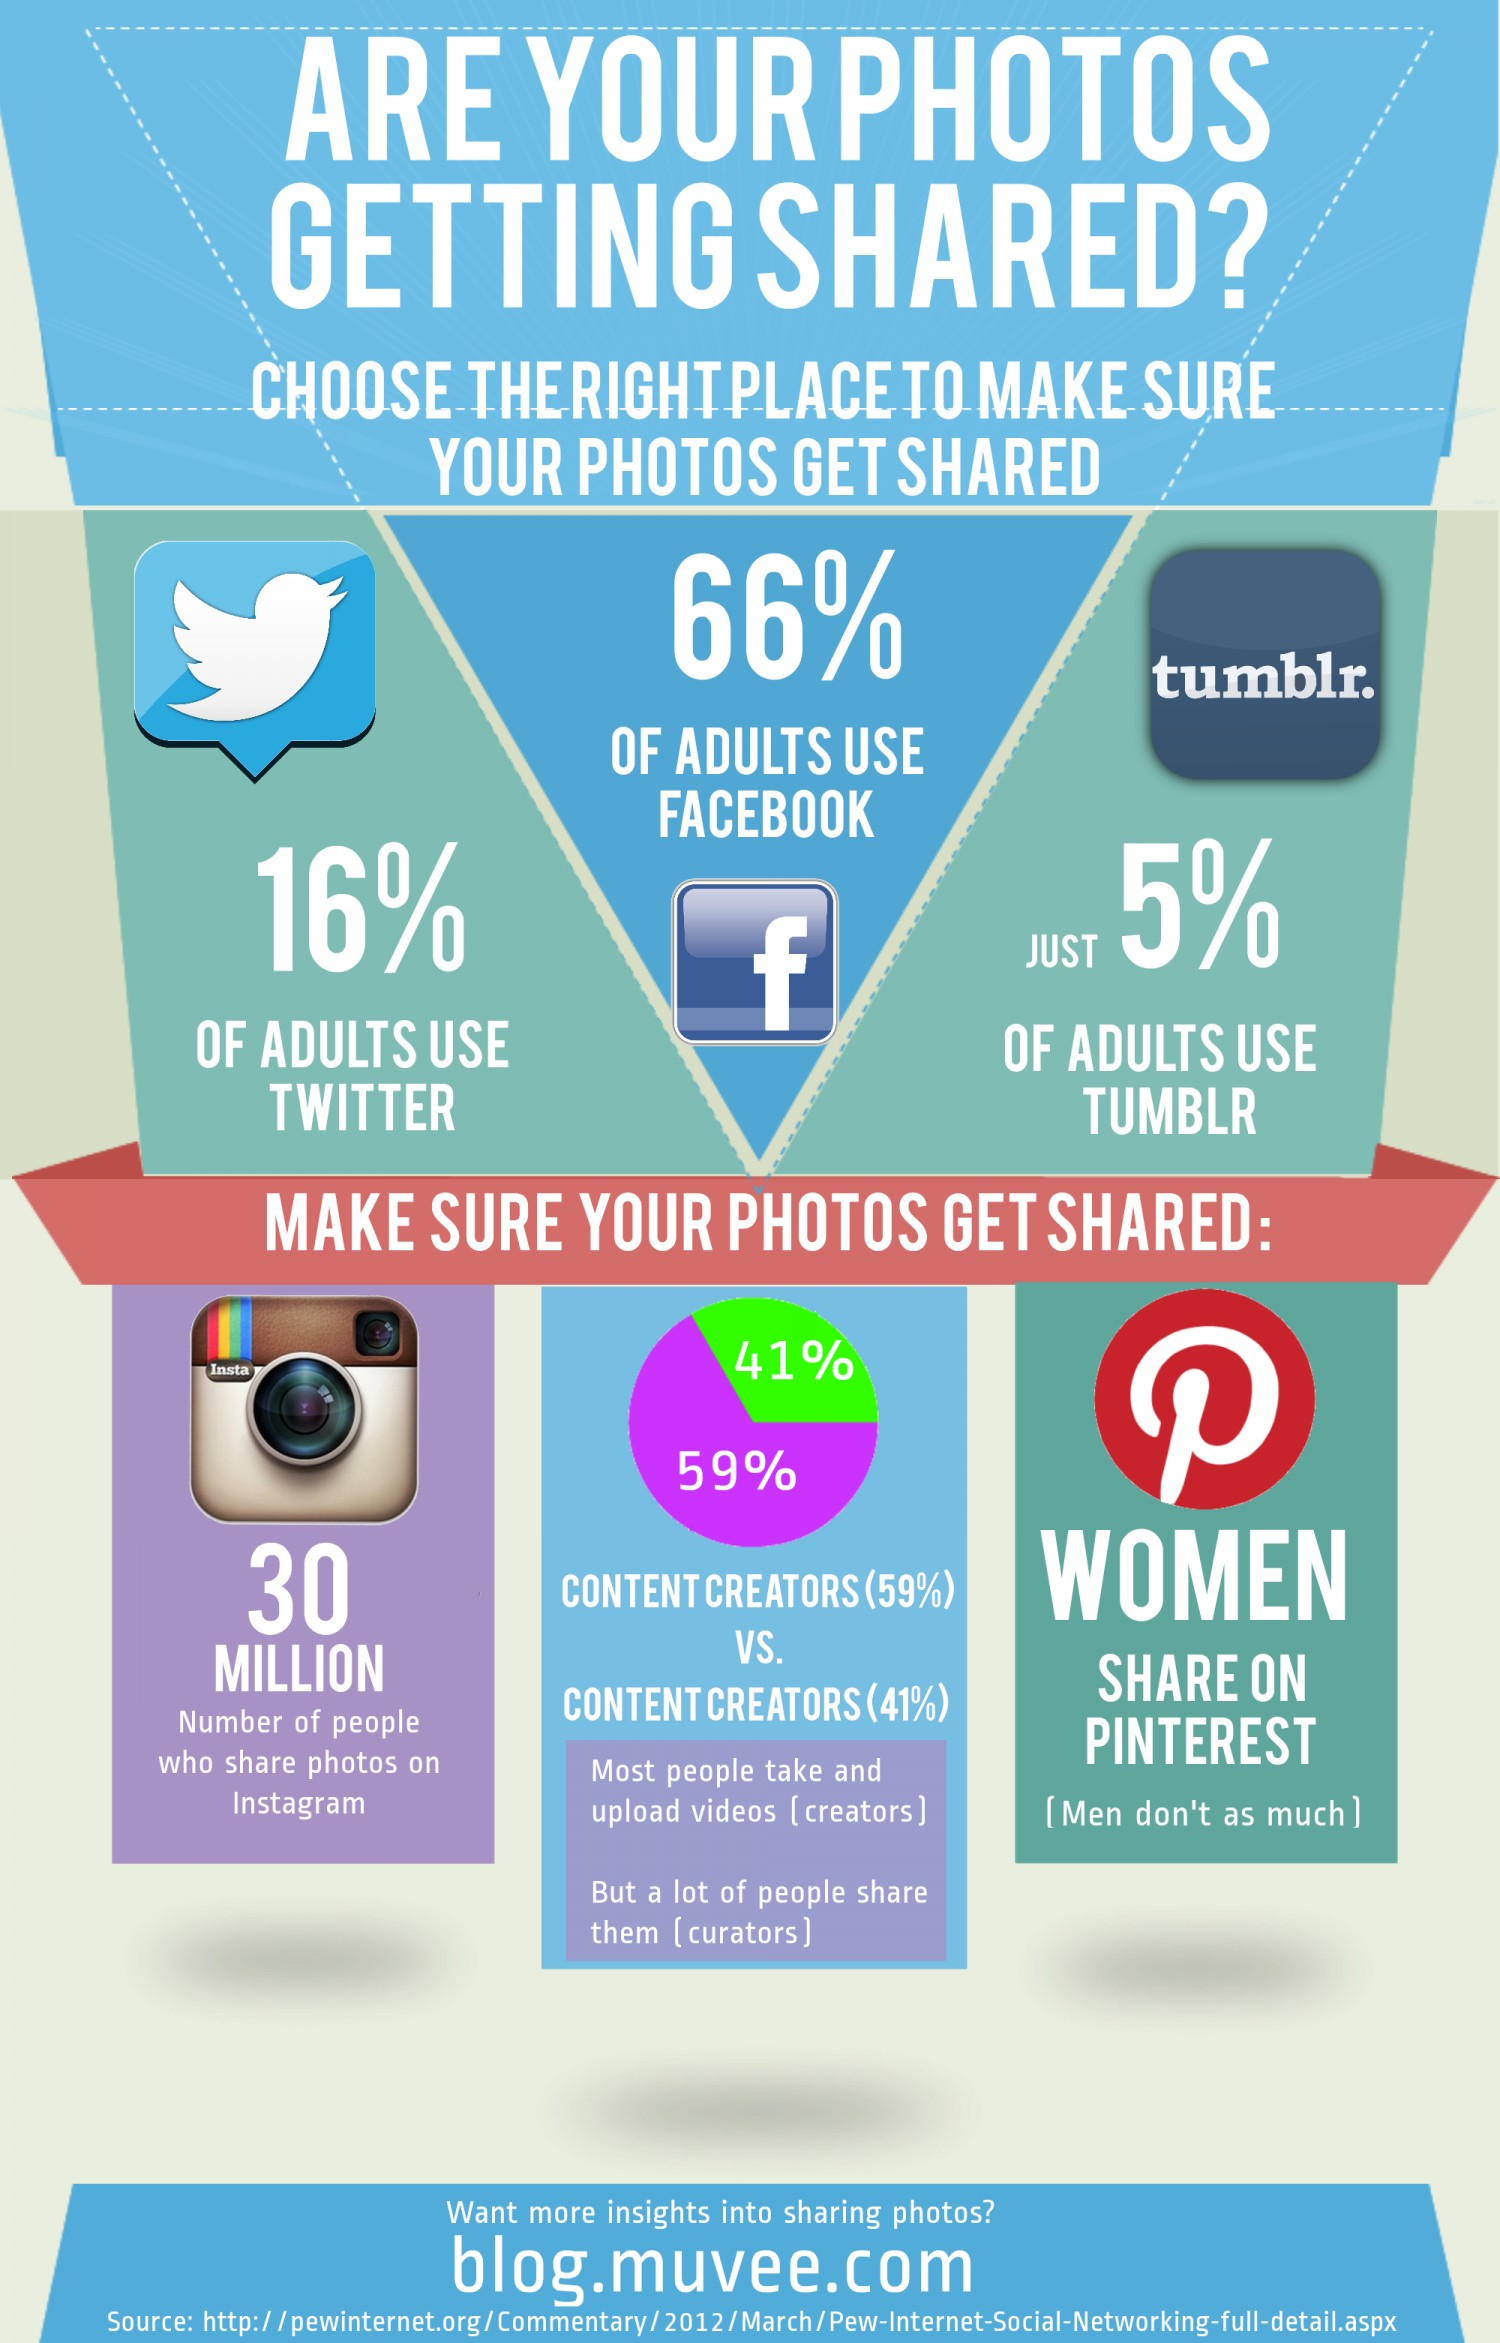 13. Are your photos getting shared